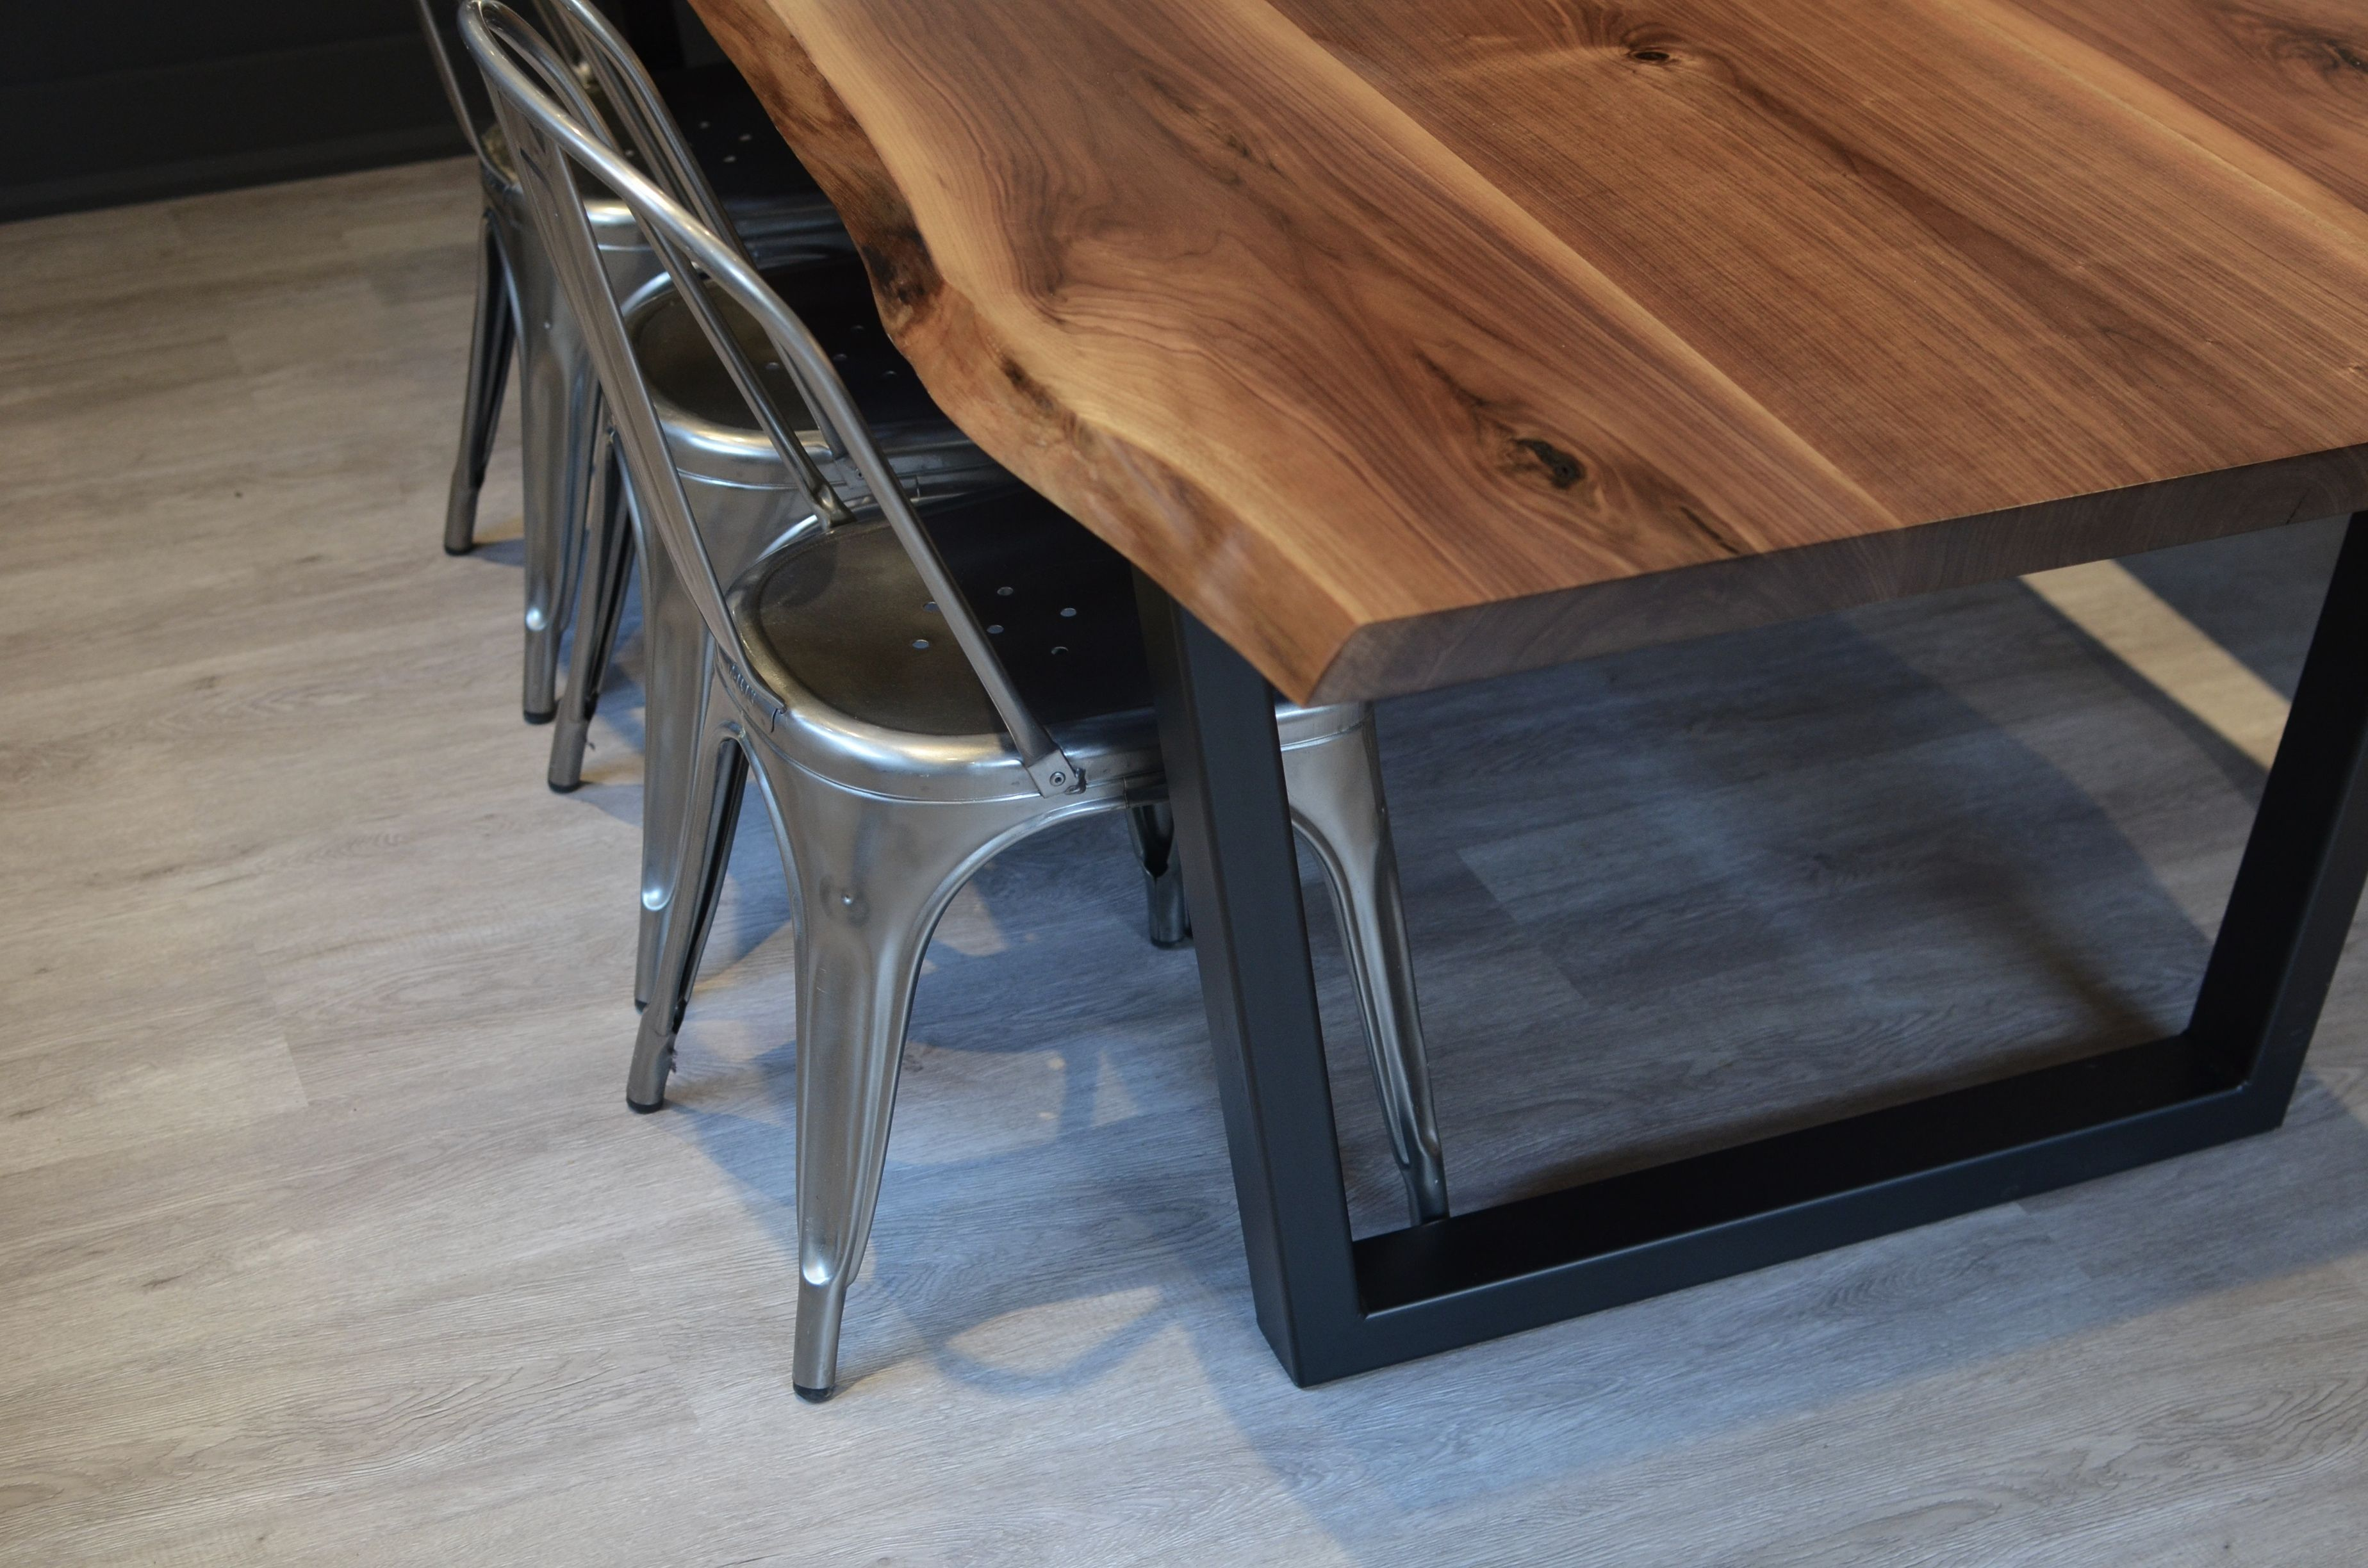 Live Edge Walnut Harvest Table With Welded Steel Trapezoid Base